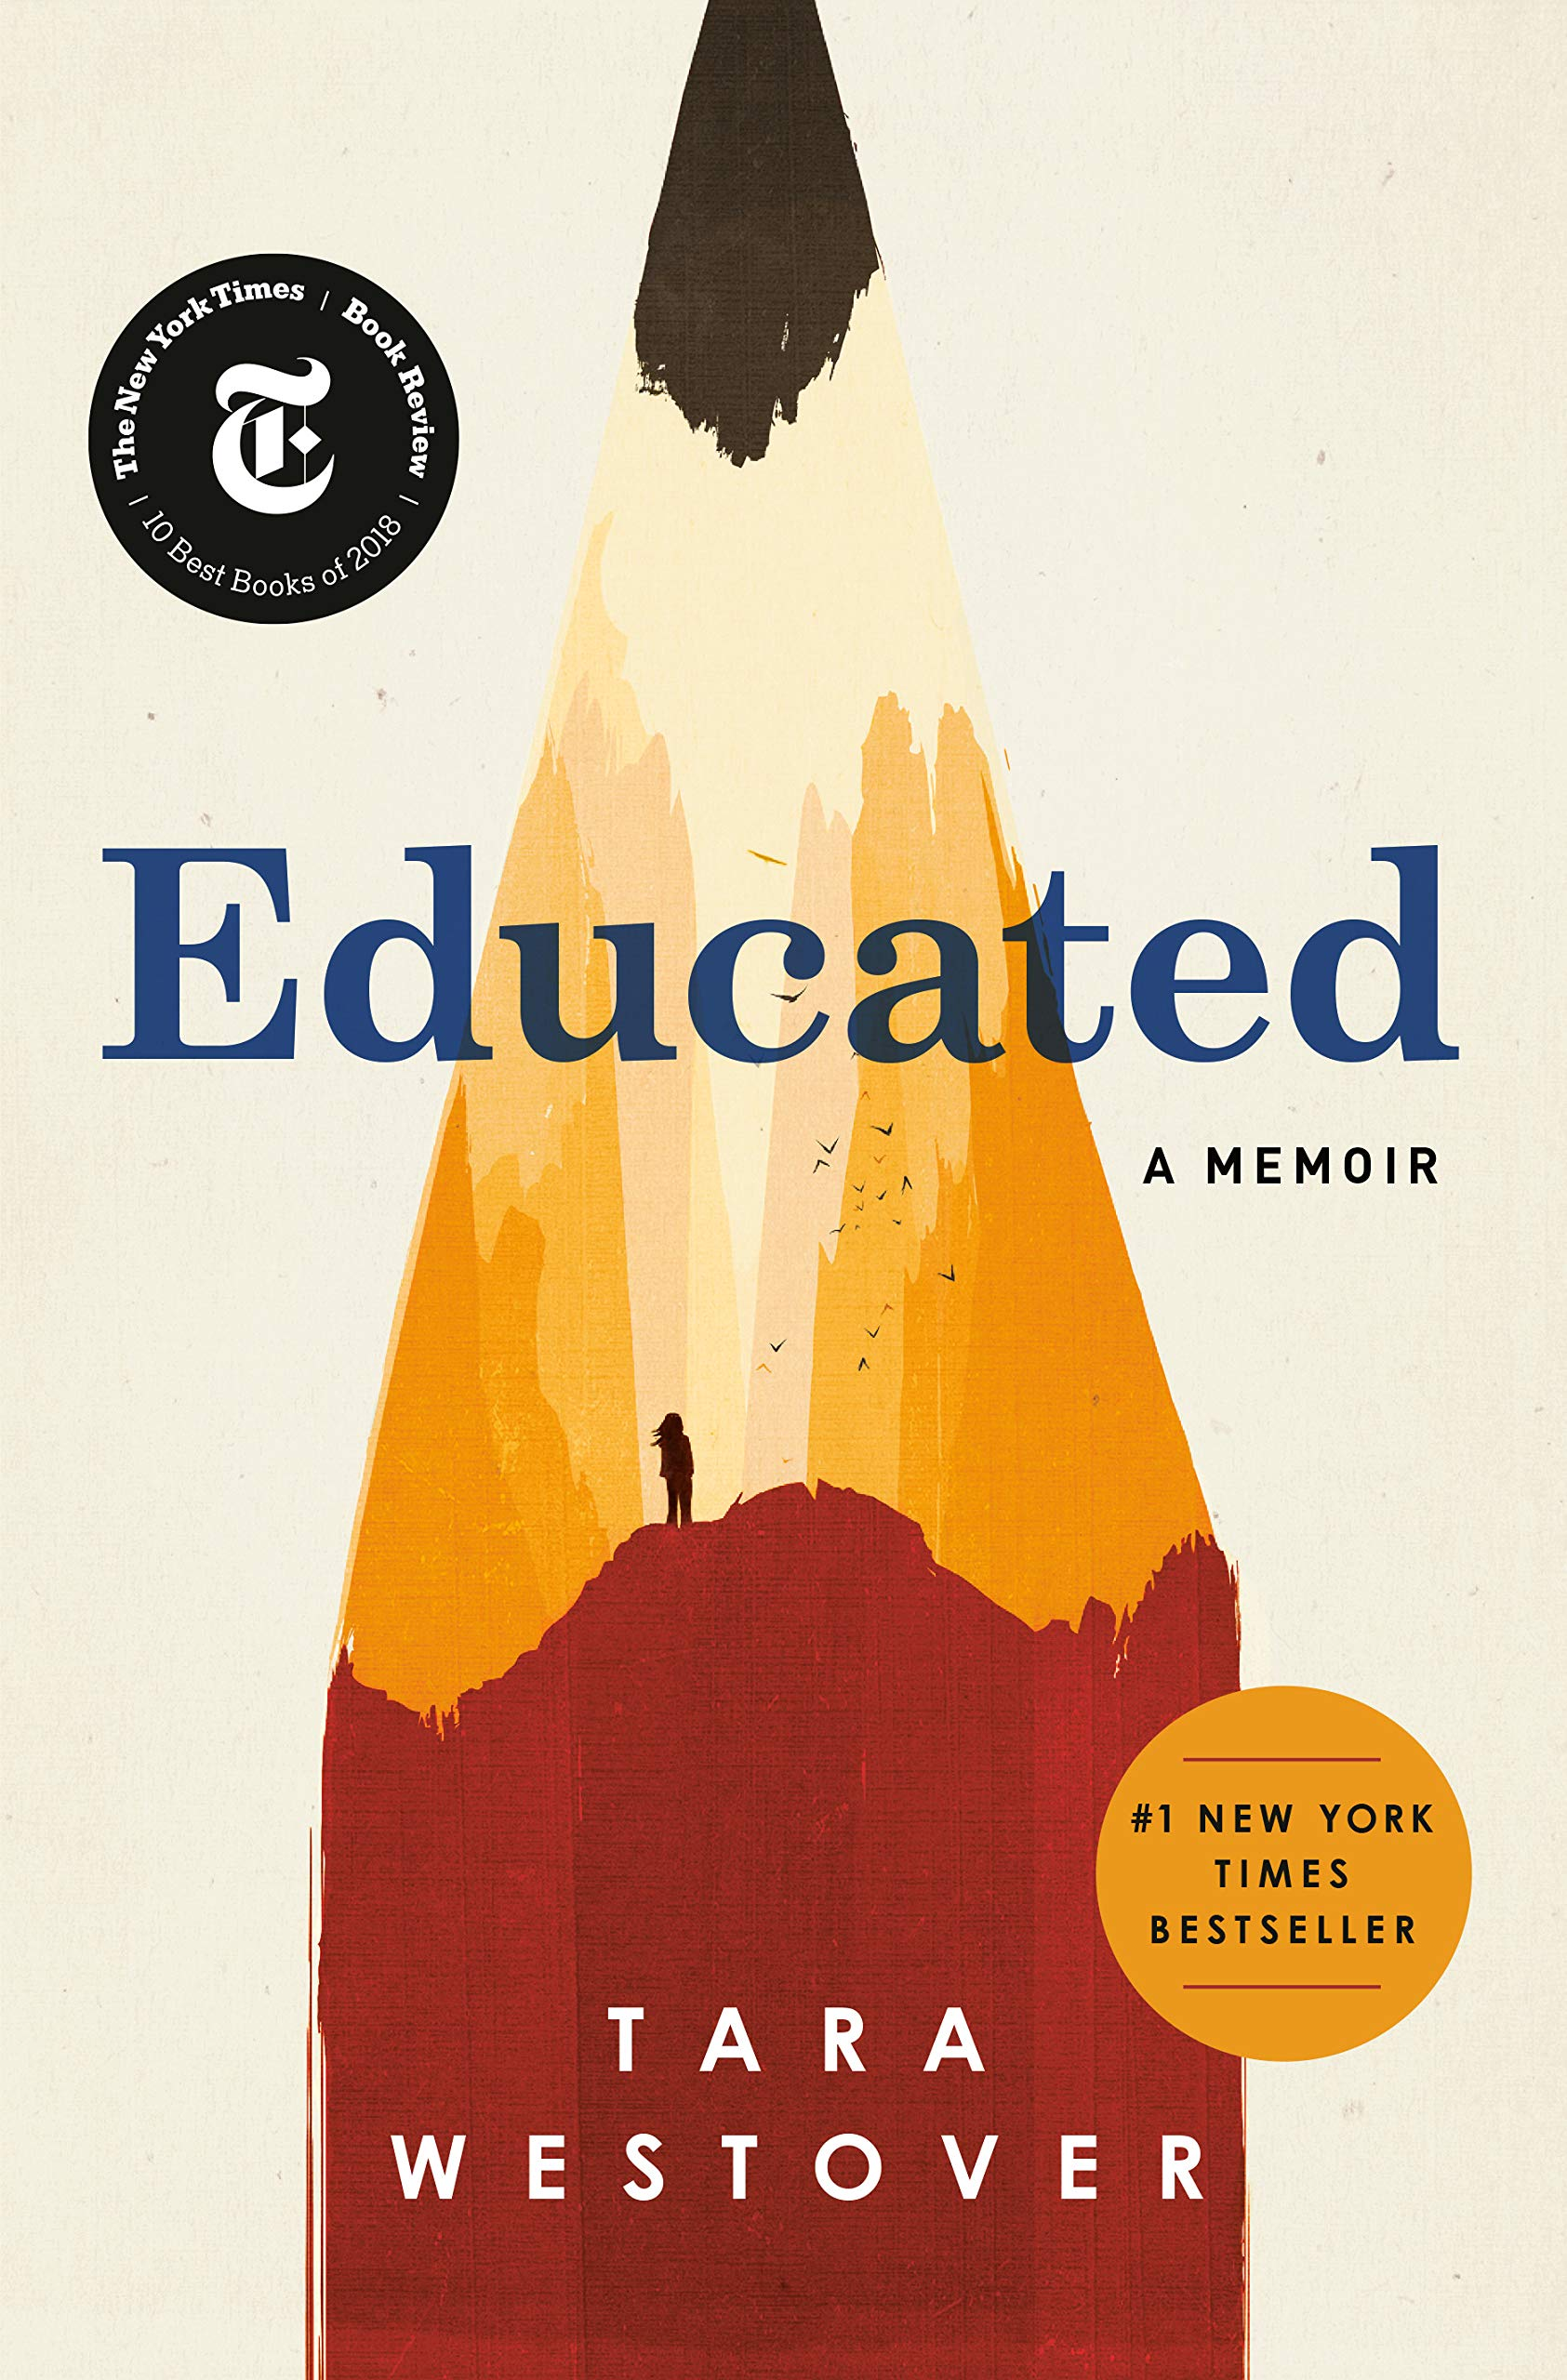 Book cover of Educated by Tara Westover. Drawing of a pencil made to look like a mountain peak.